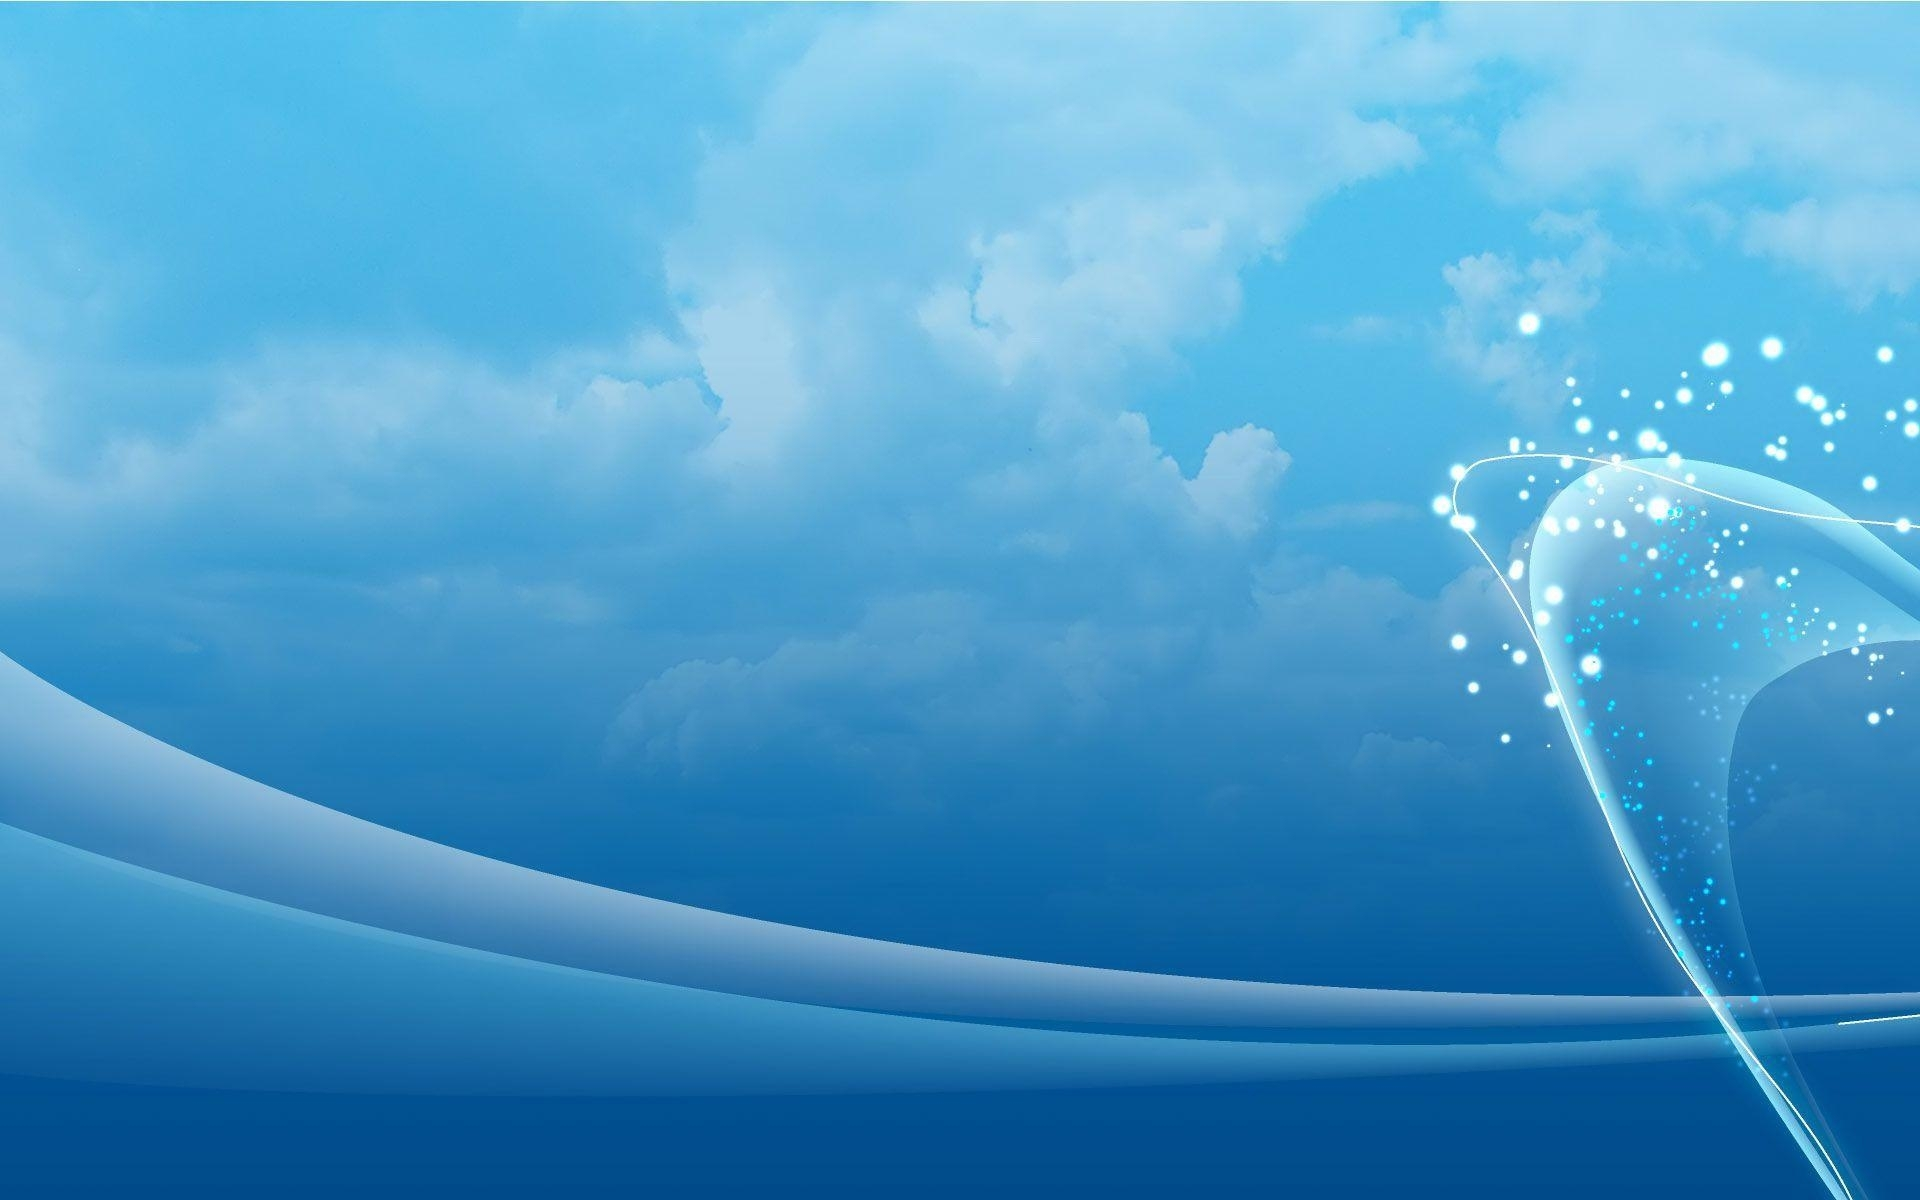 sky blue backgrounds - wallpaper cave